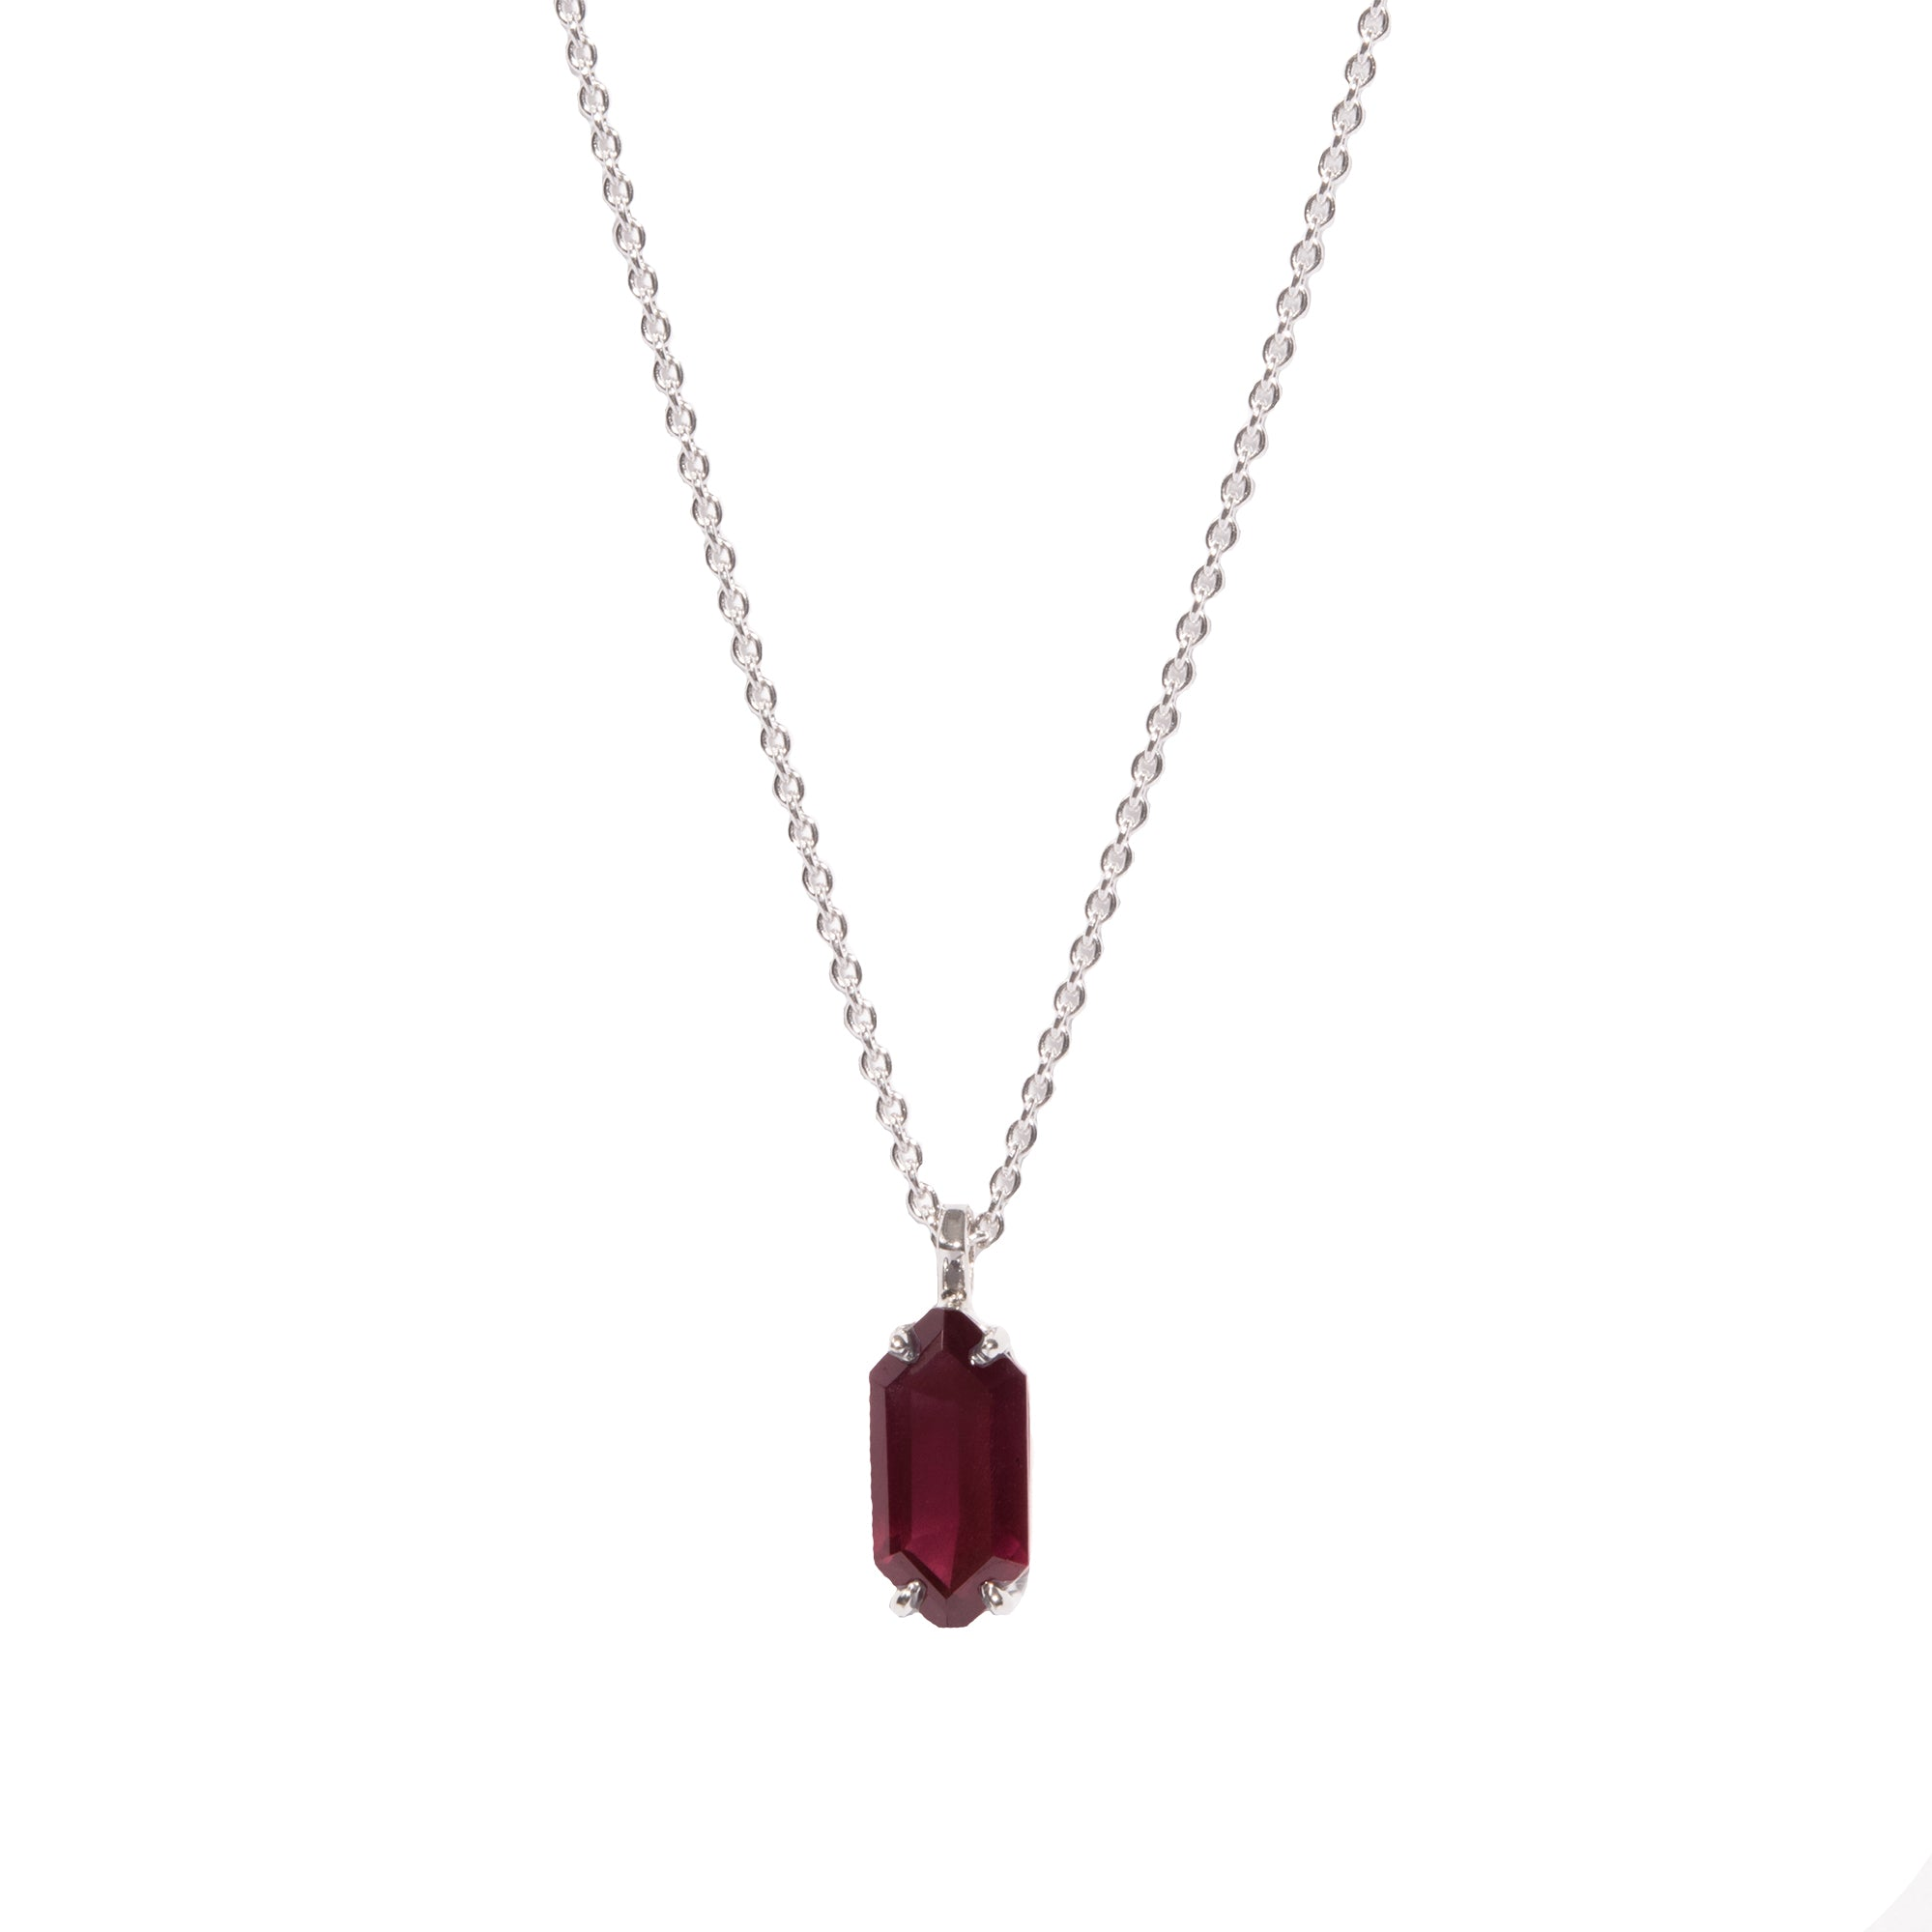 diamond pendant halo jewelry cushion broome fine pav cut product garnet